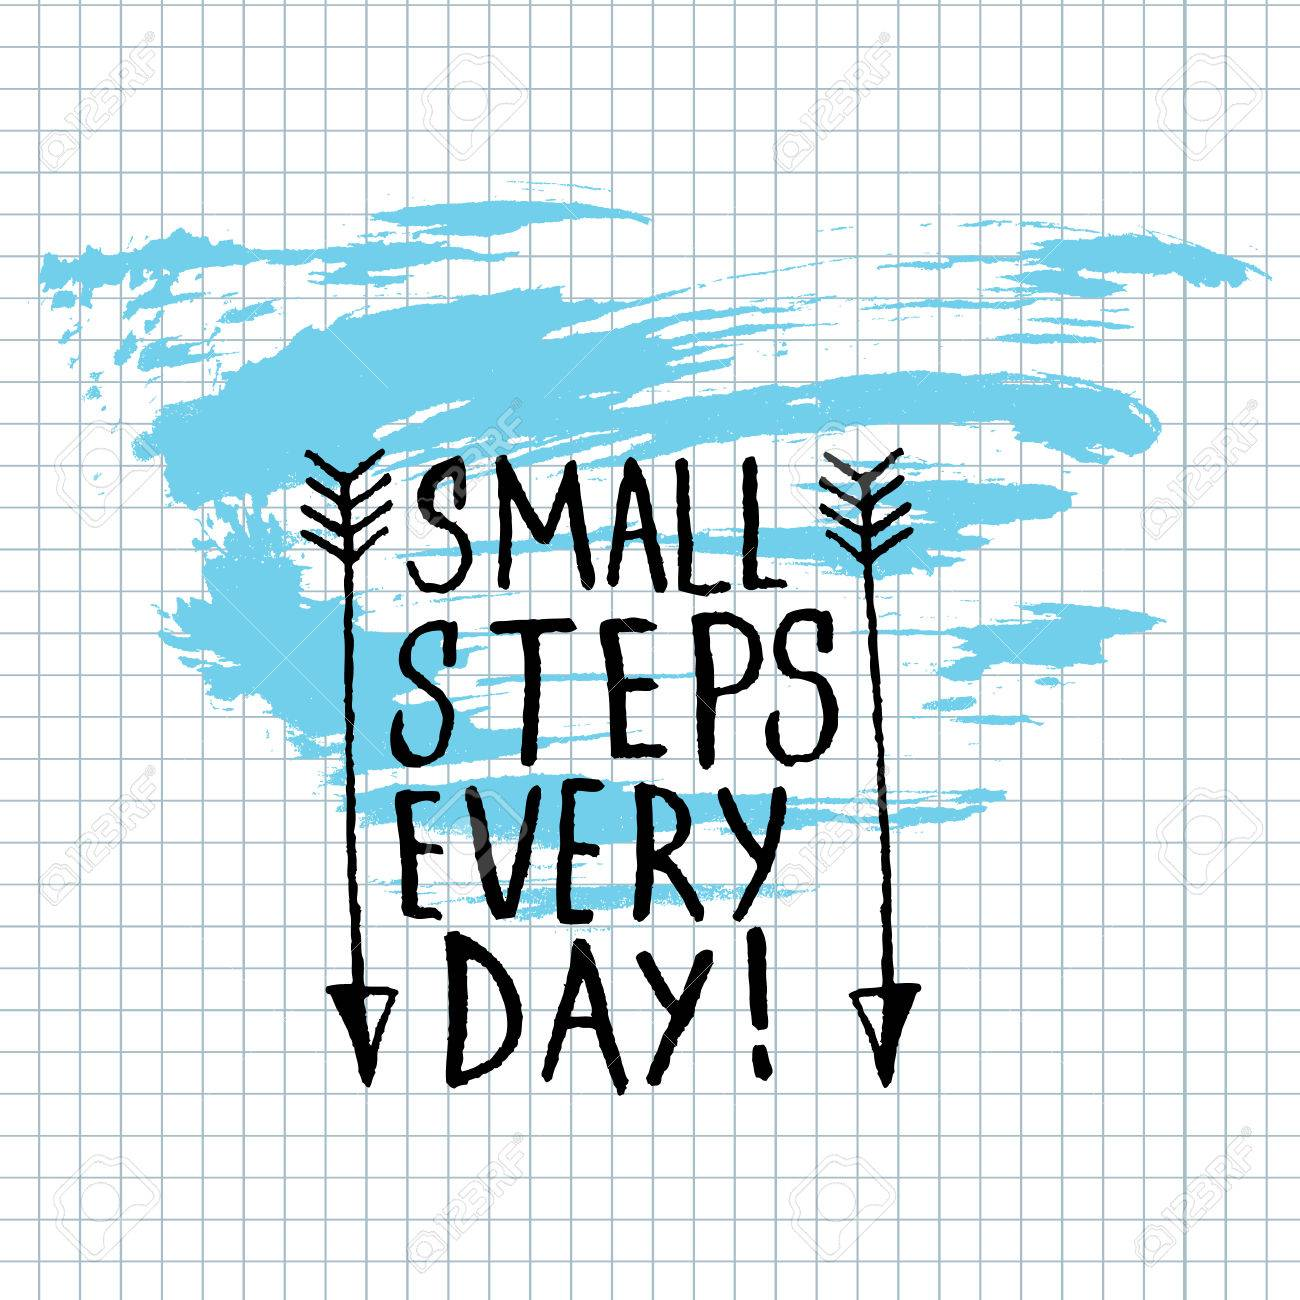 small steps every day lettering calligraphy hand written small steps every day lettering calligraphy hand written decorative word design element banner